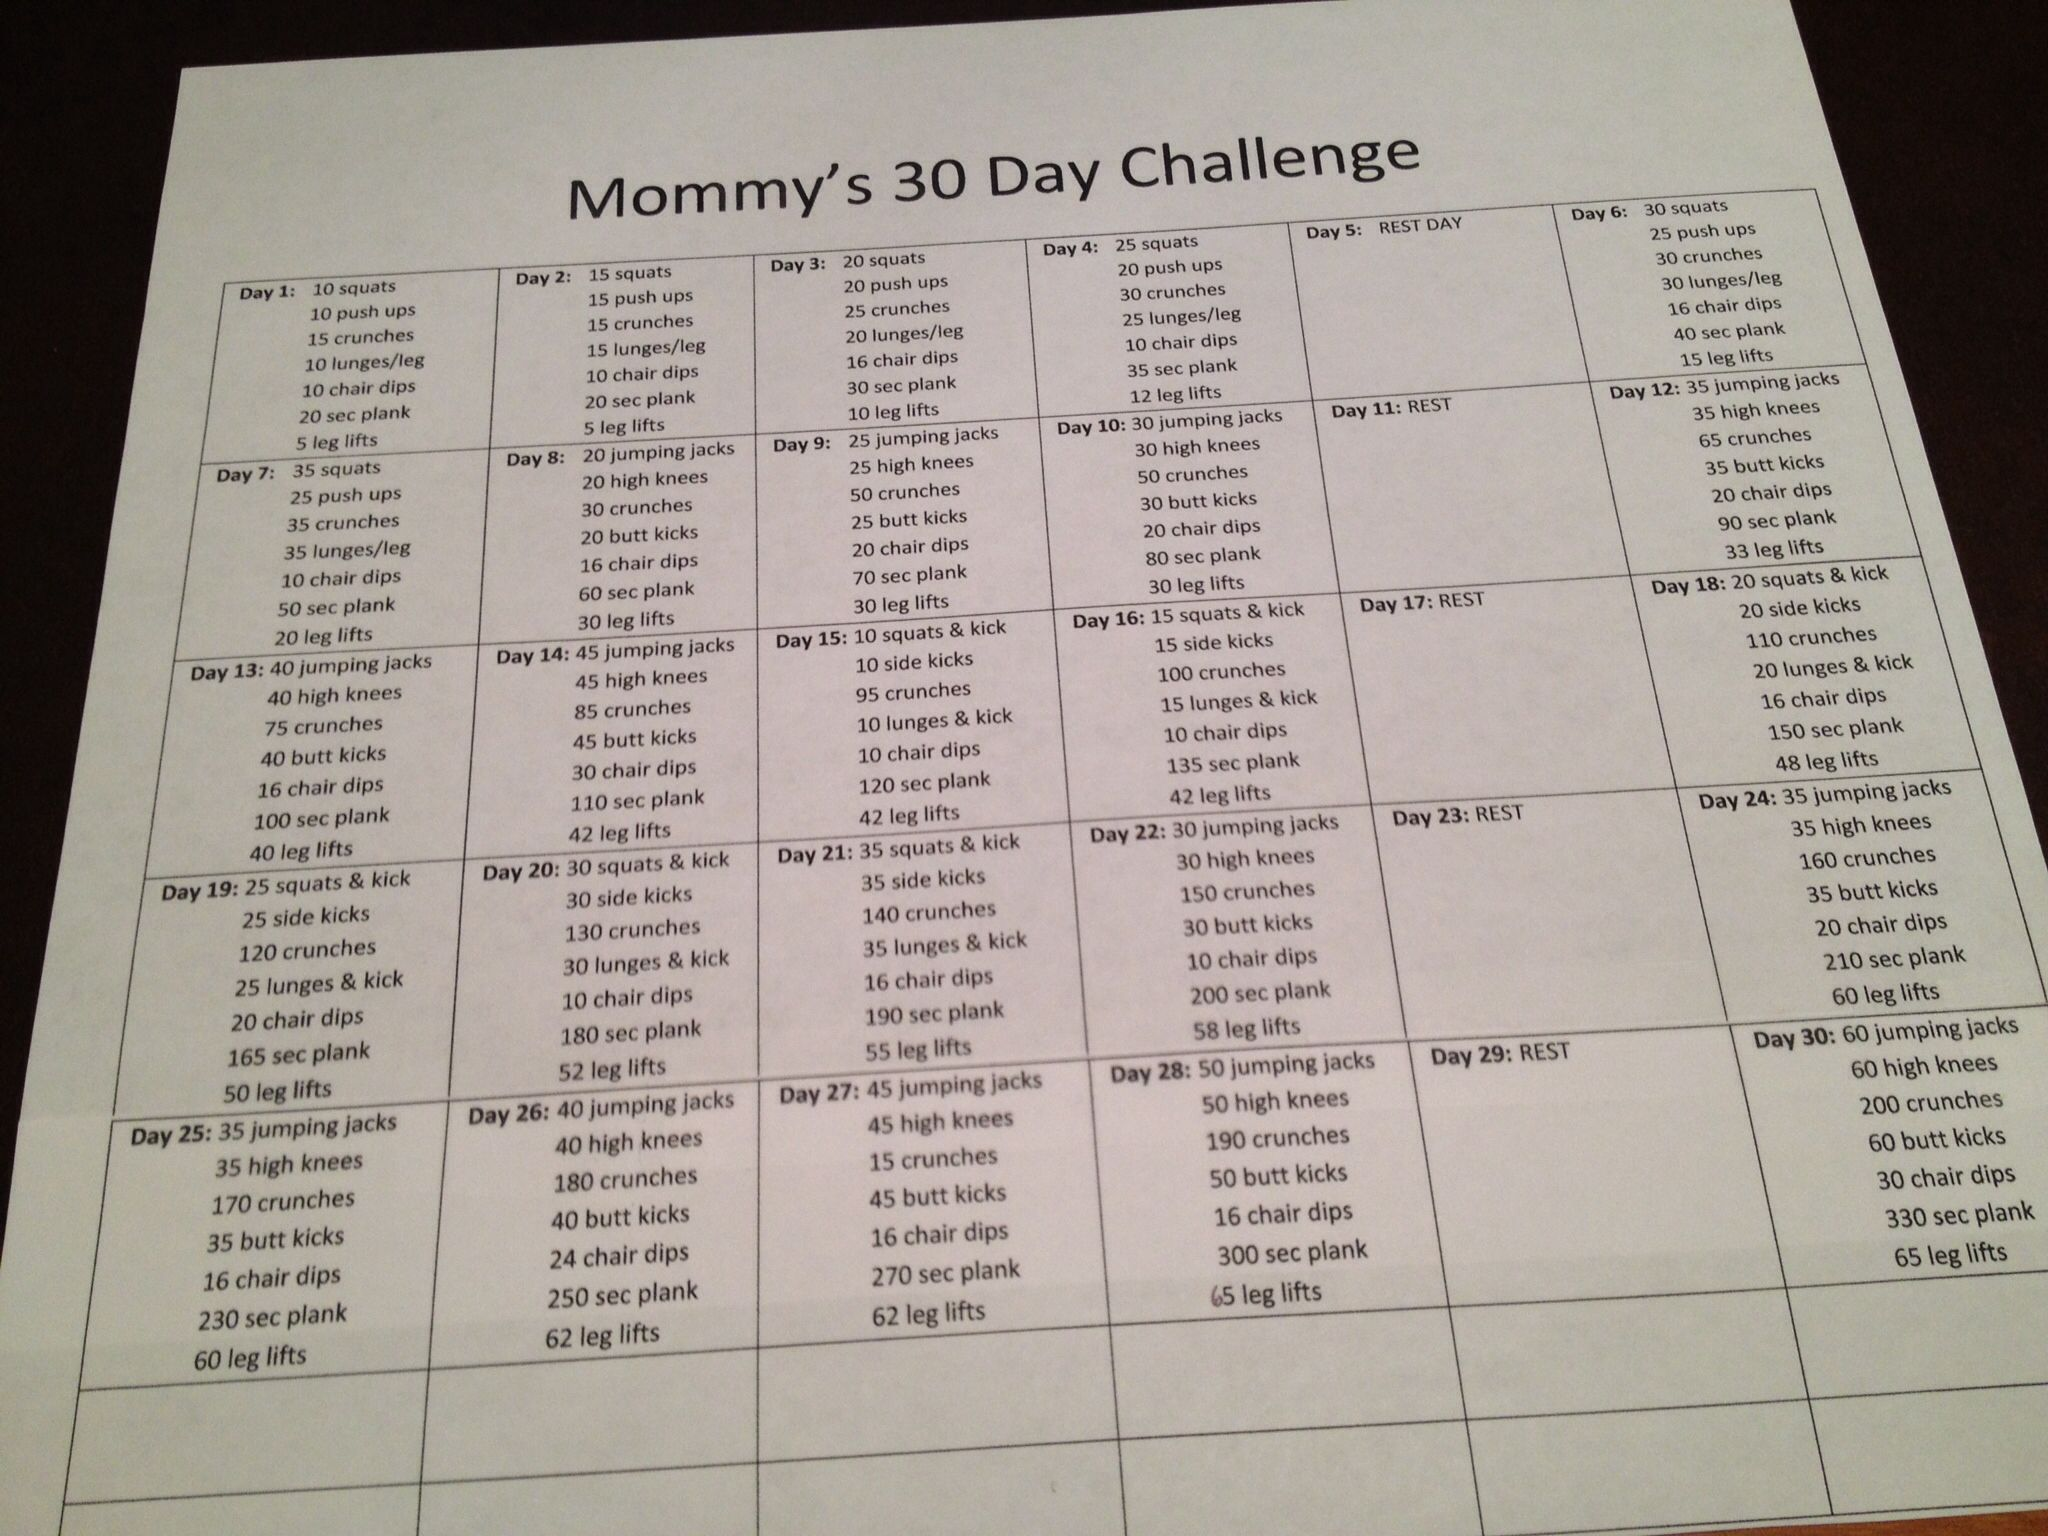 My 30 day challenge. I combined arms, abs, plank, and the no equipment challenges together into one!